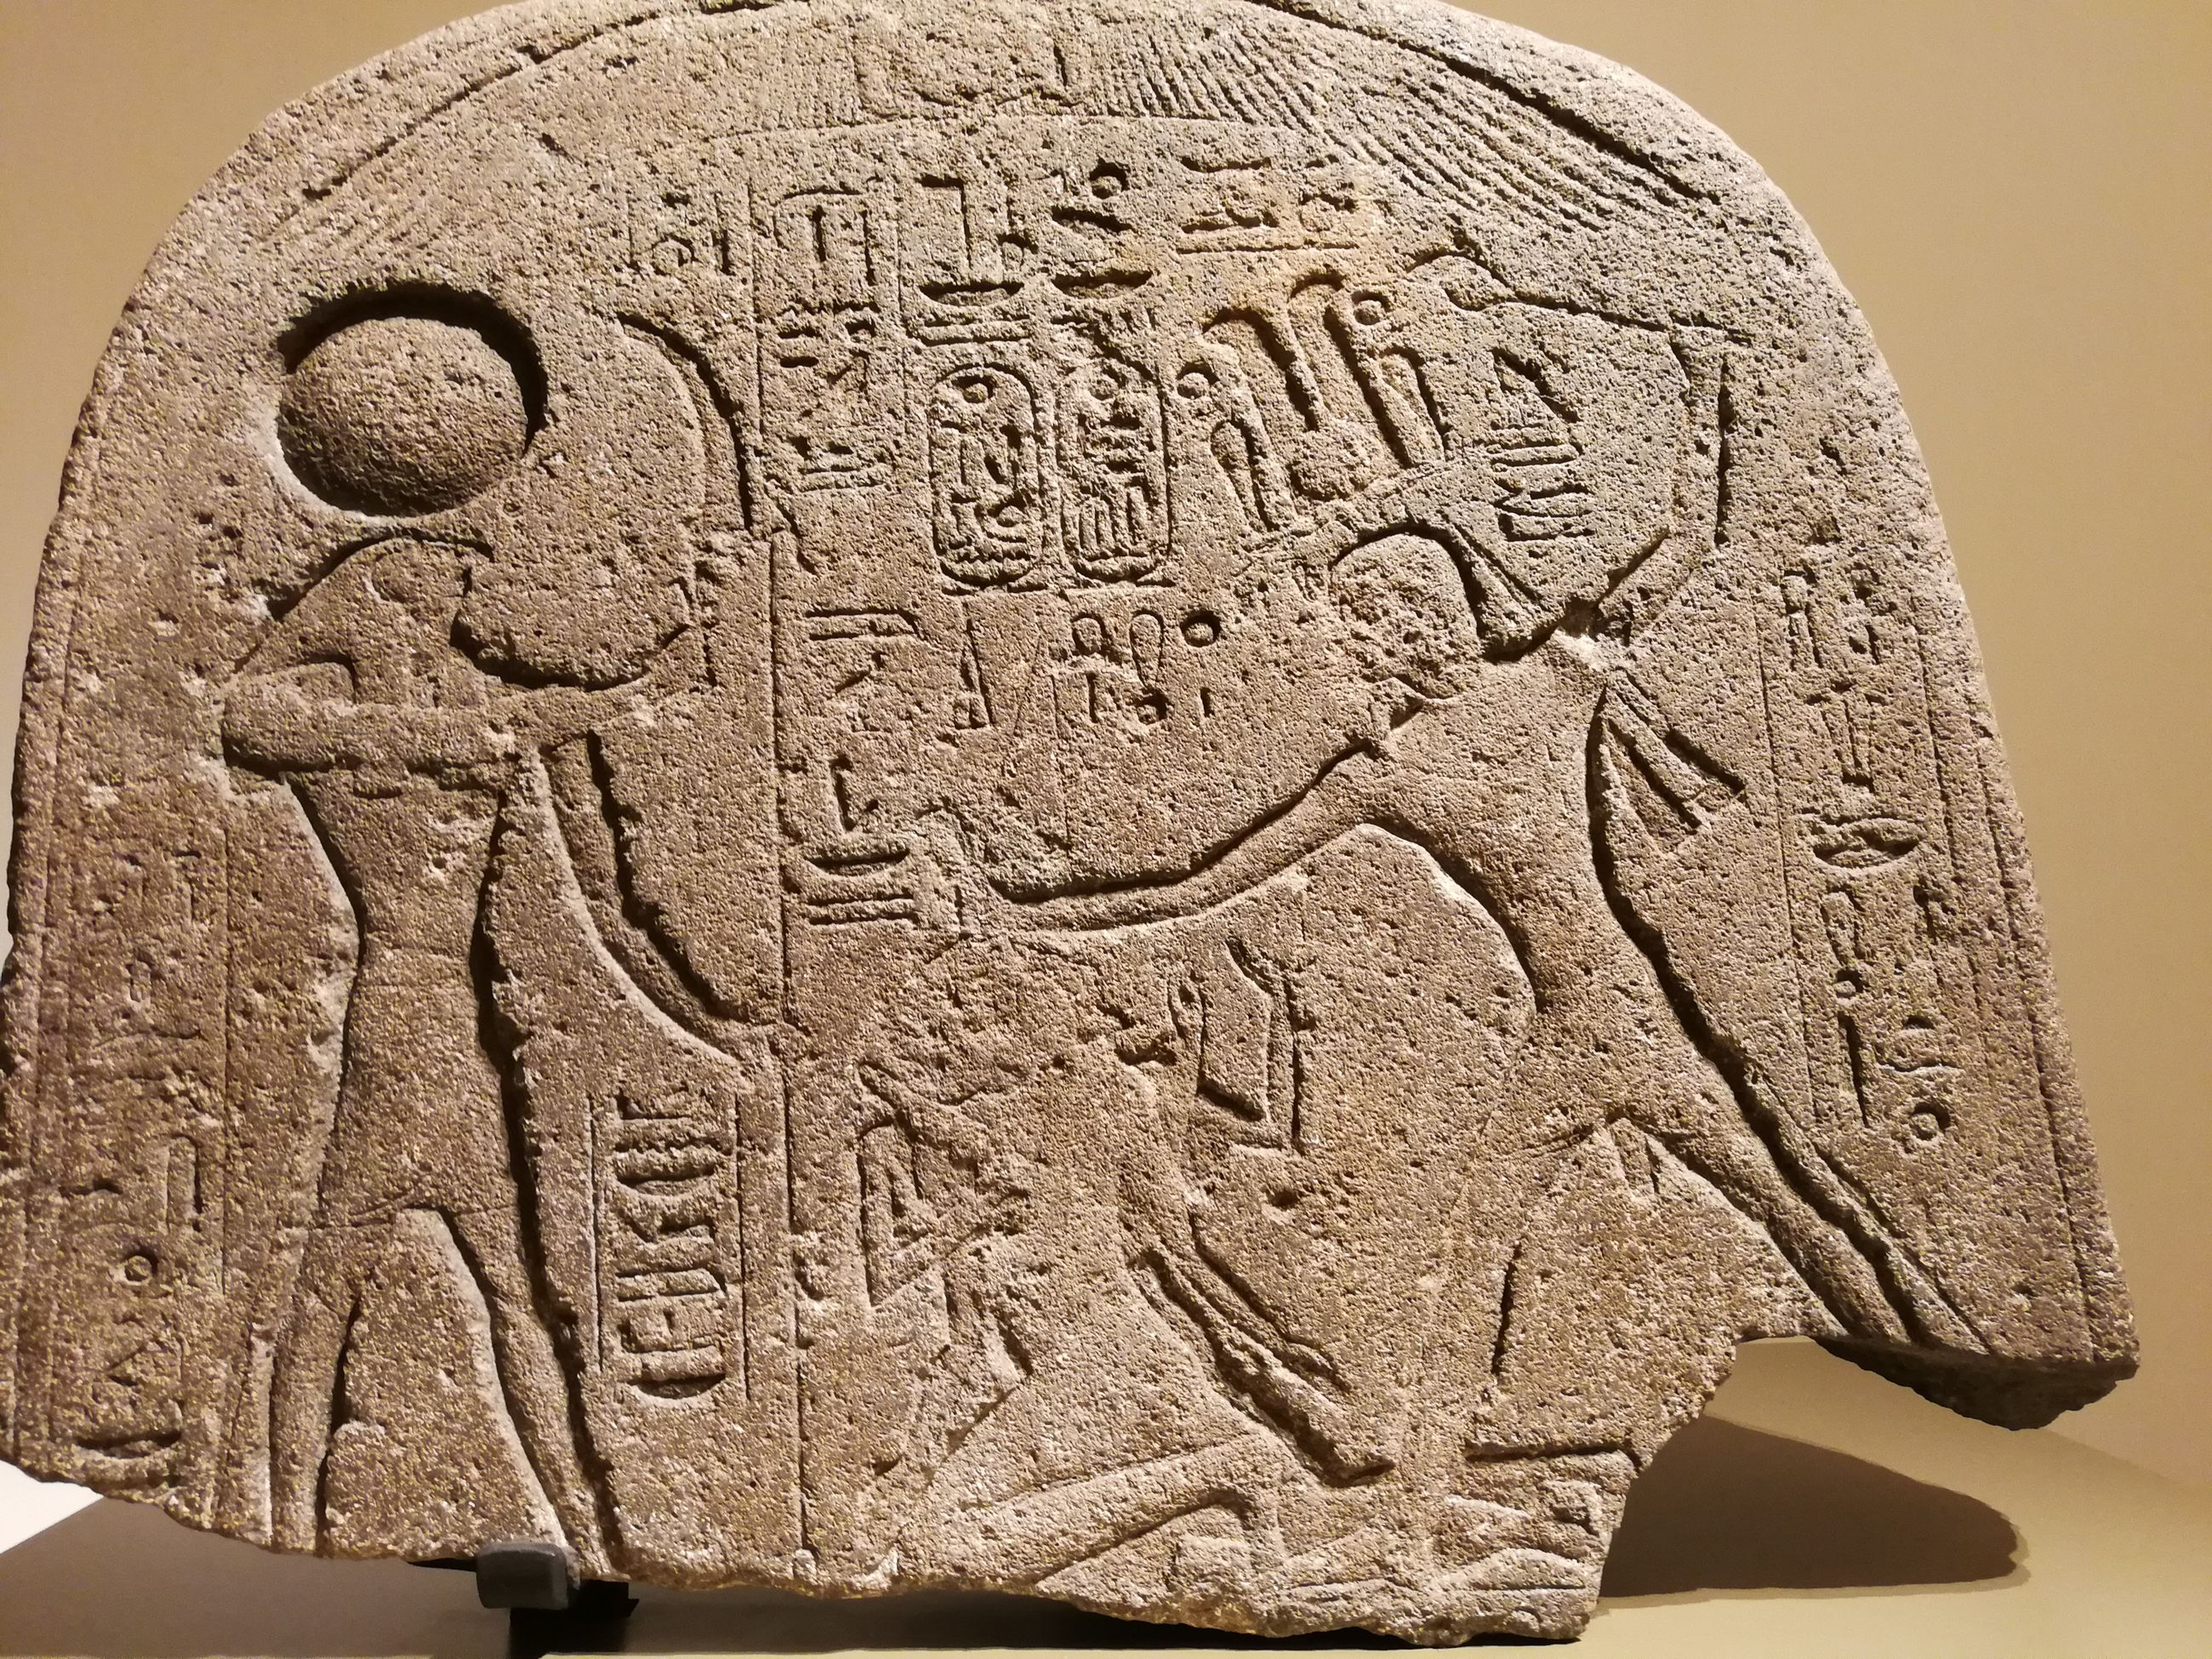 carving - craft product, ancient, ancient civilization, no people, sculpture, history, close-up, day